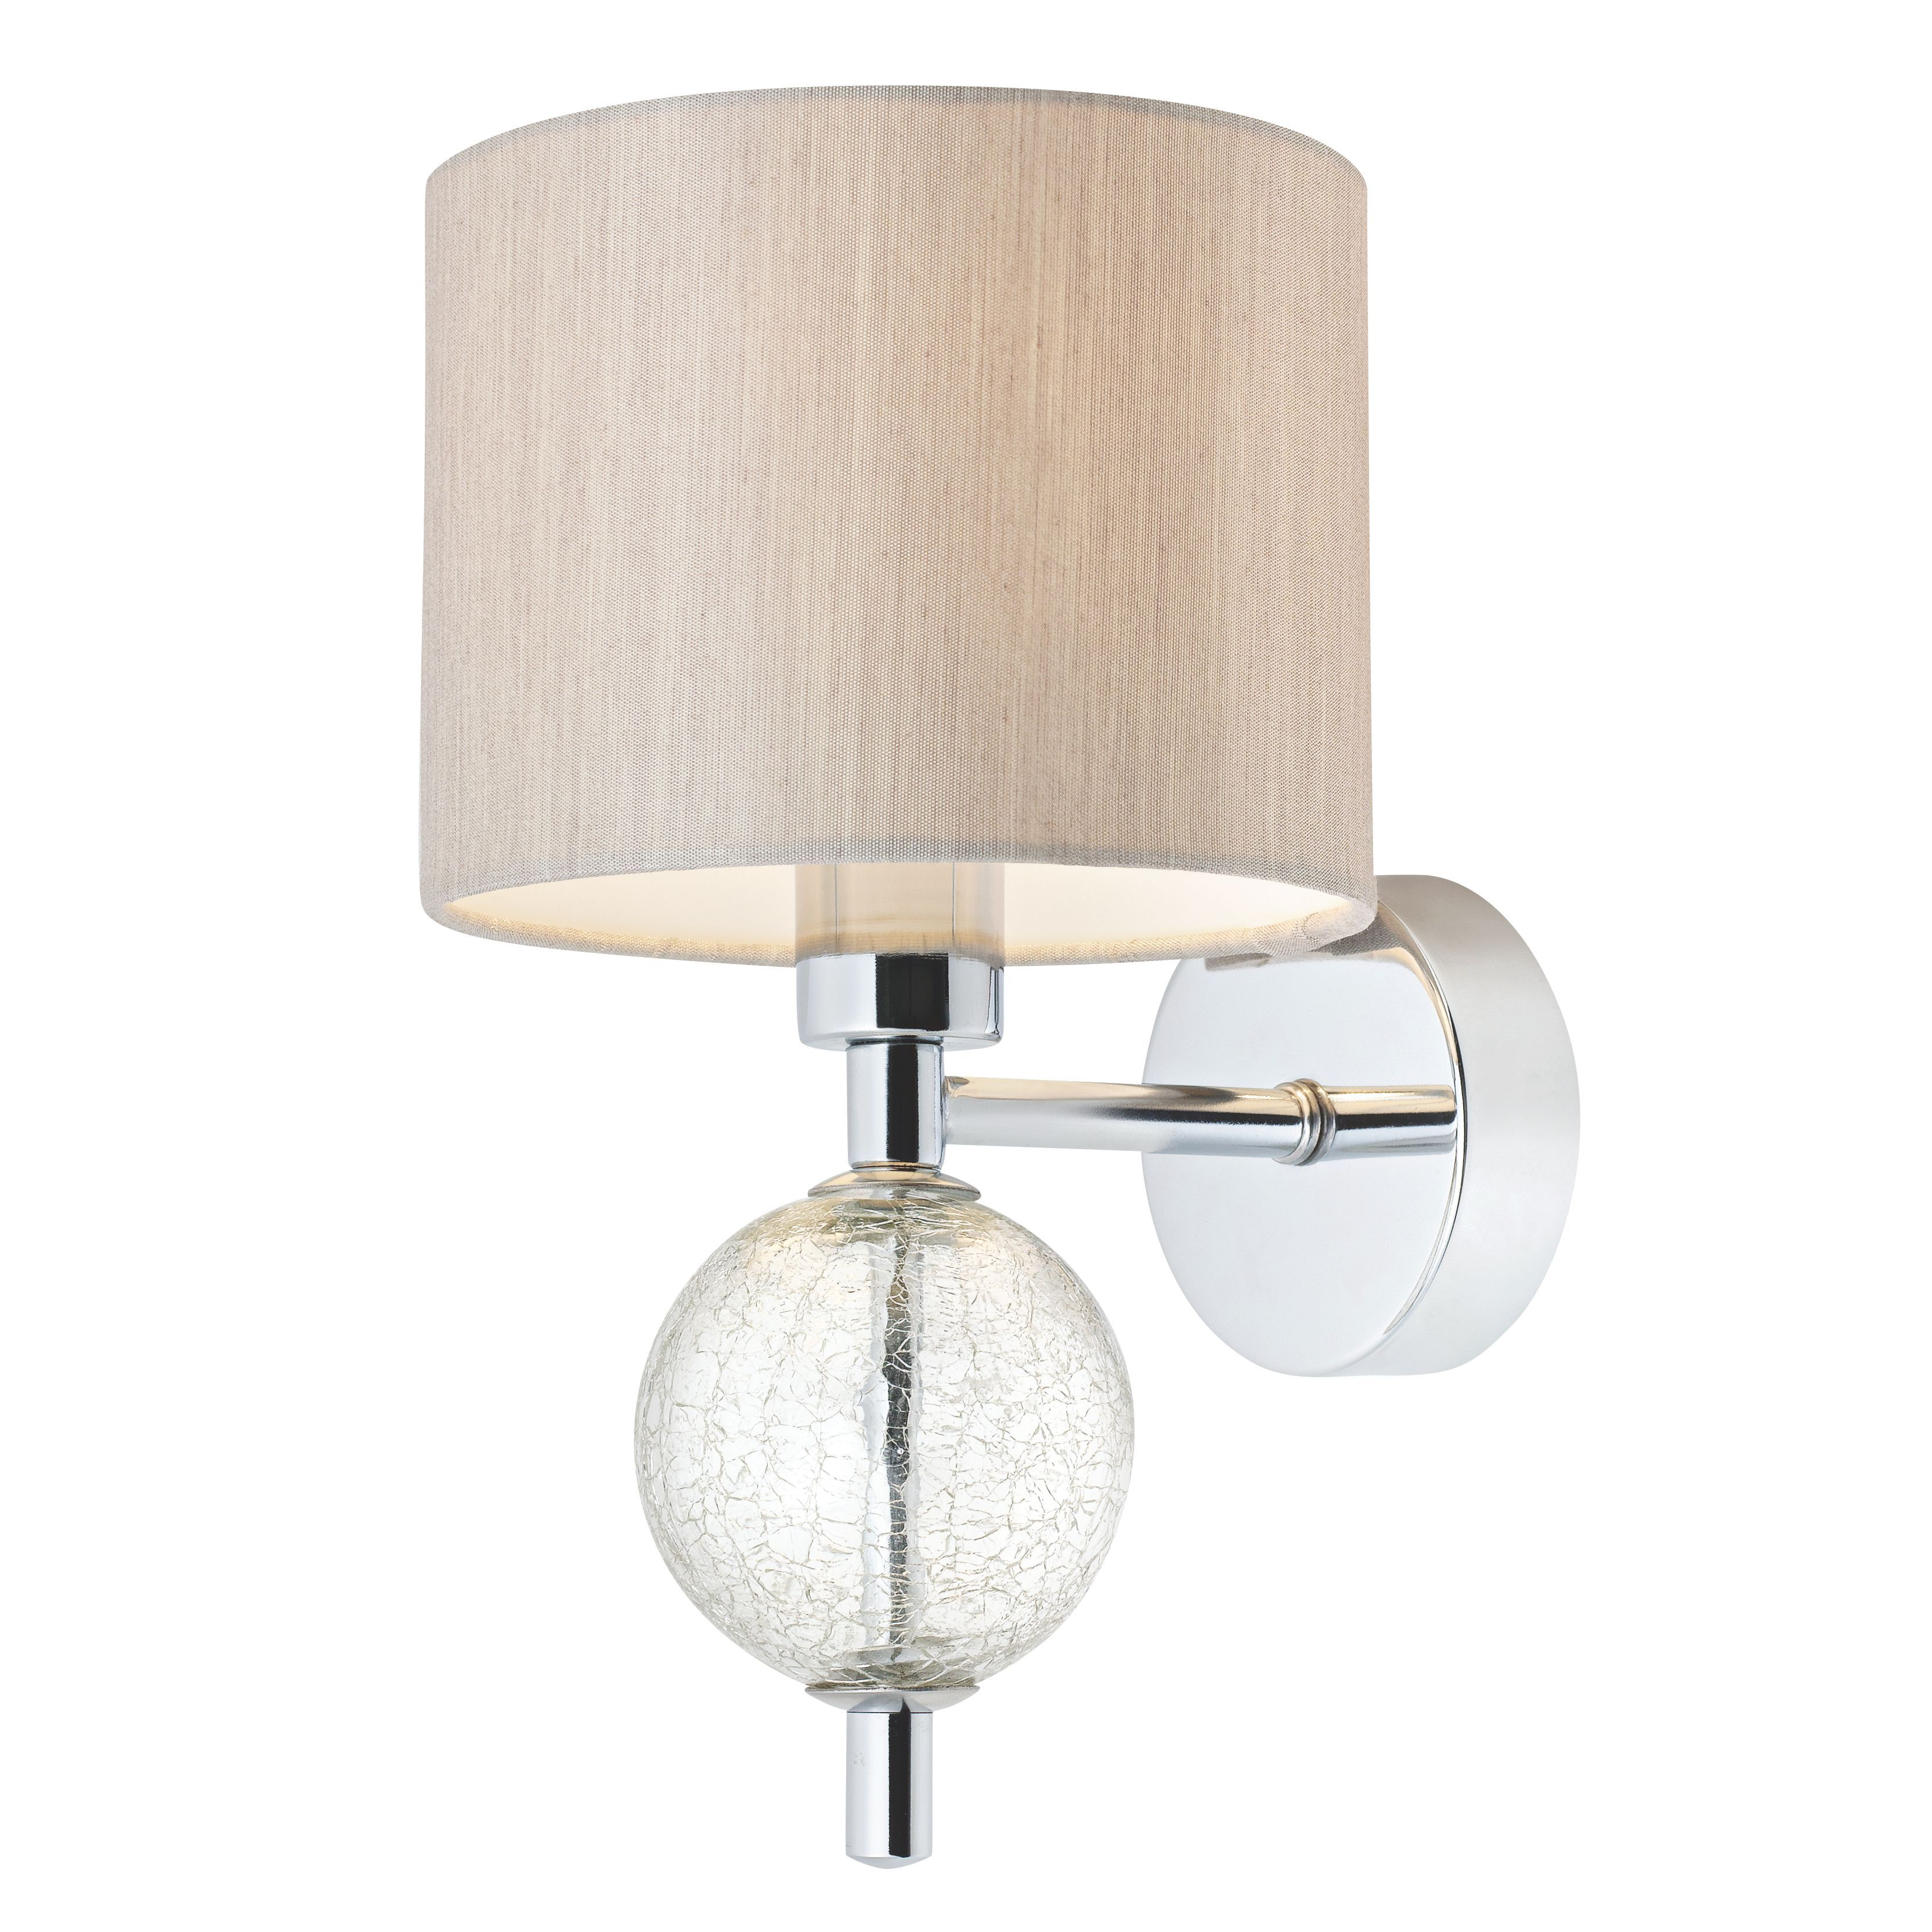 Gina beige single wall light beige walls and lights gina beige single wall light bq for all your home and garden supplies and advice on all the latest diy trends aloadofball Image collections